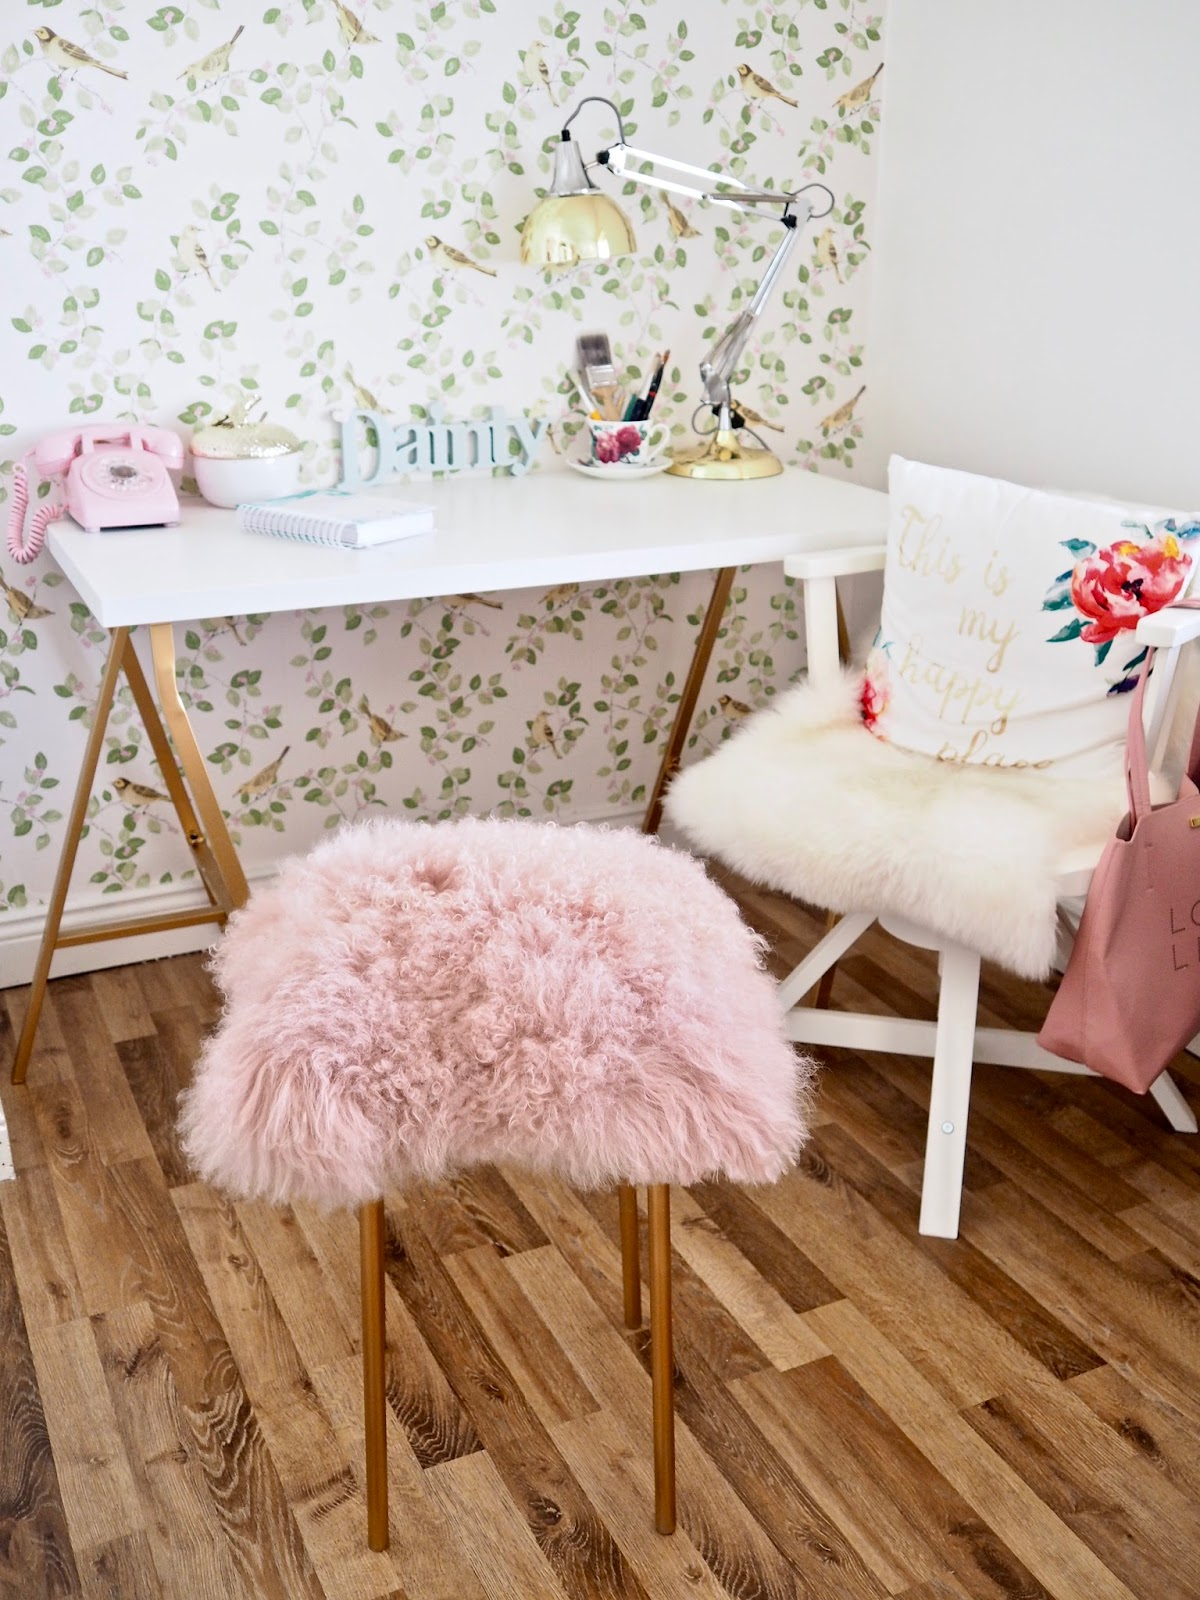 Pink Fluffy Chair Ikea Hack Diy Fur Stool The Dainty Dress Diaries